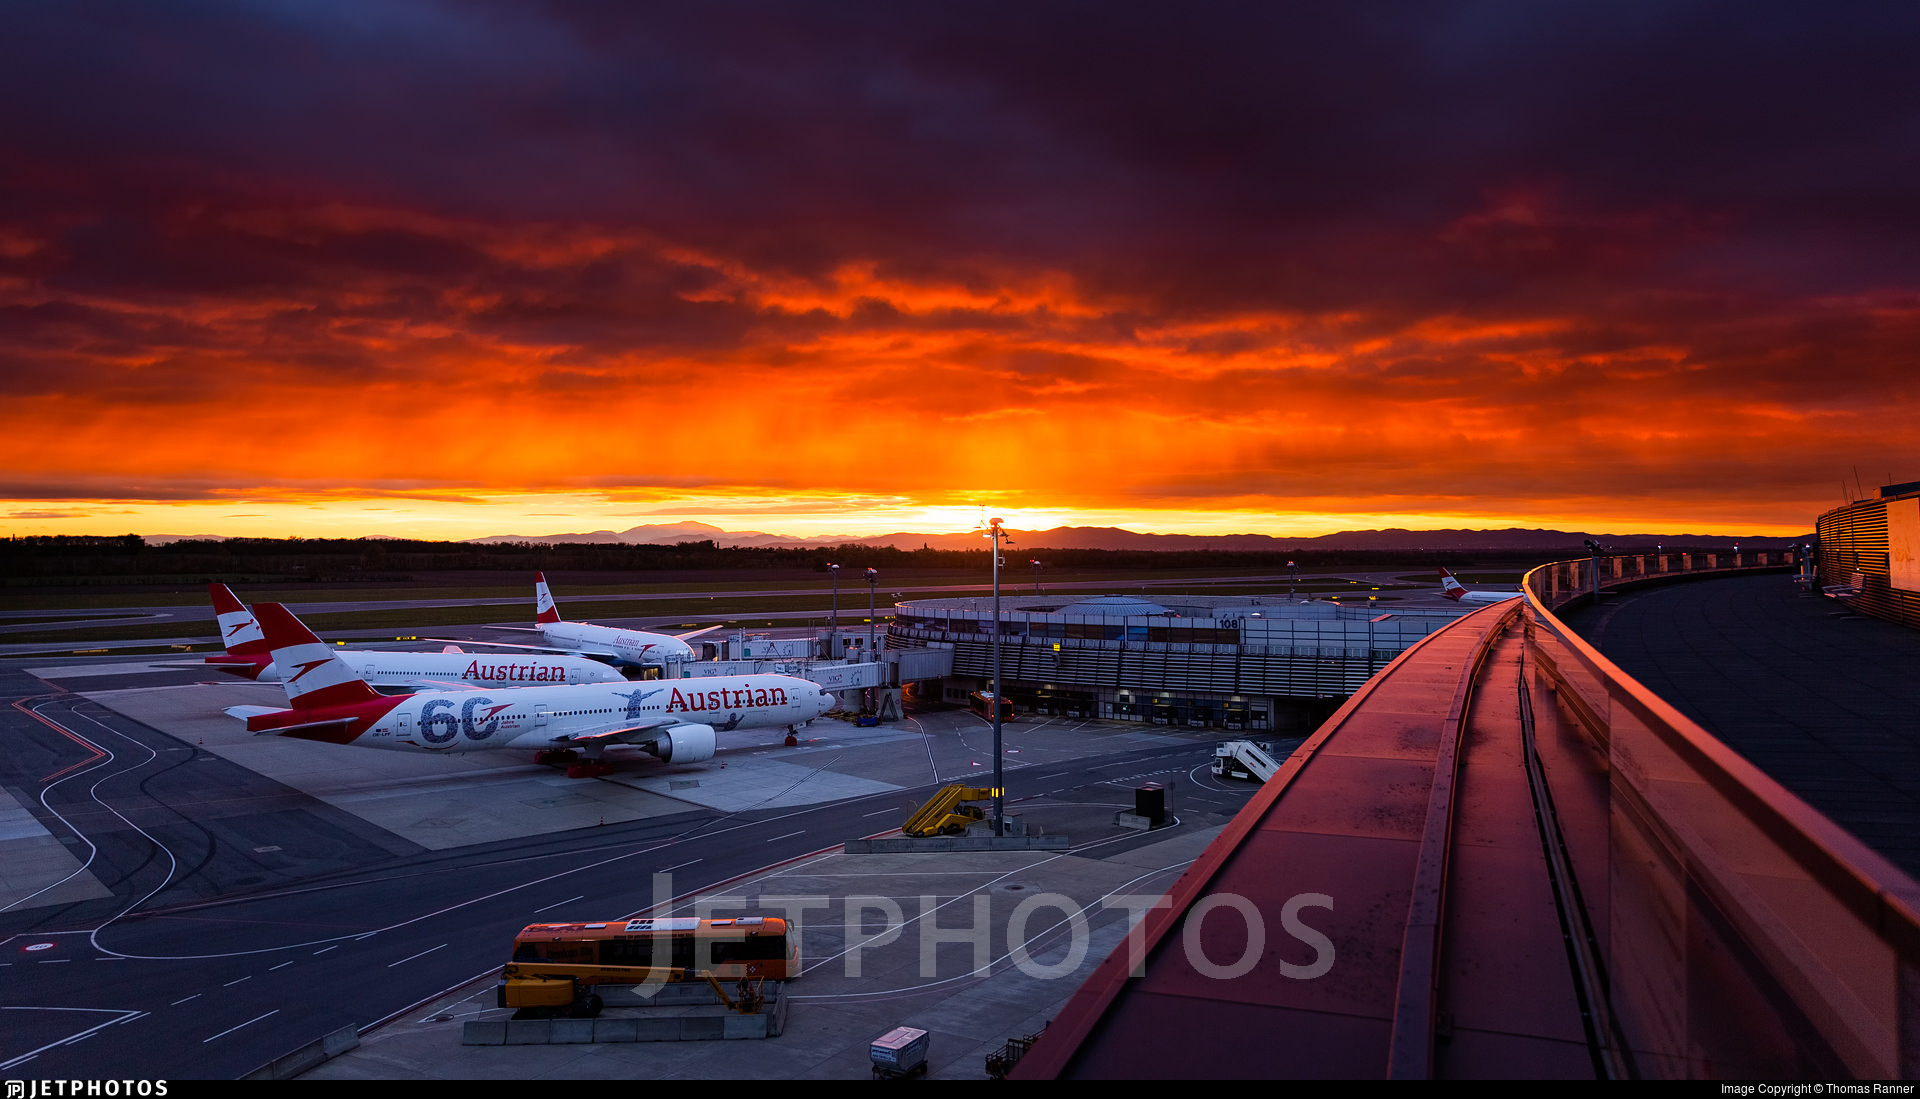 Sunset in Vienna with Austrian Airlines aircraft parked at the gate